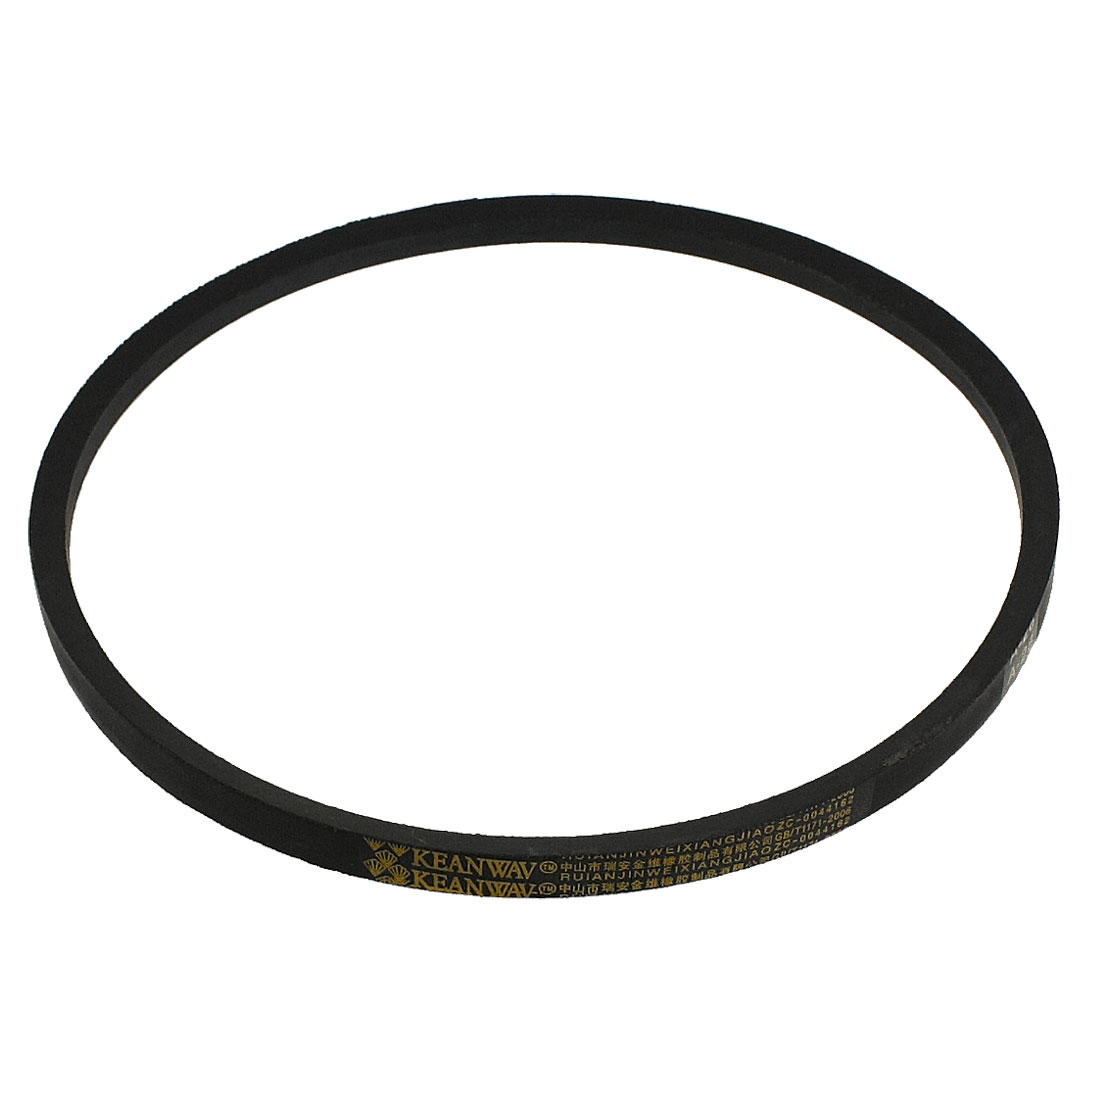 "33/64"" x 31 1/2"" Machinery Drive Band A Type Vee V Belt Black"